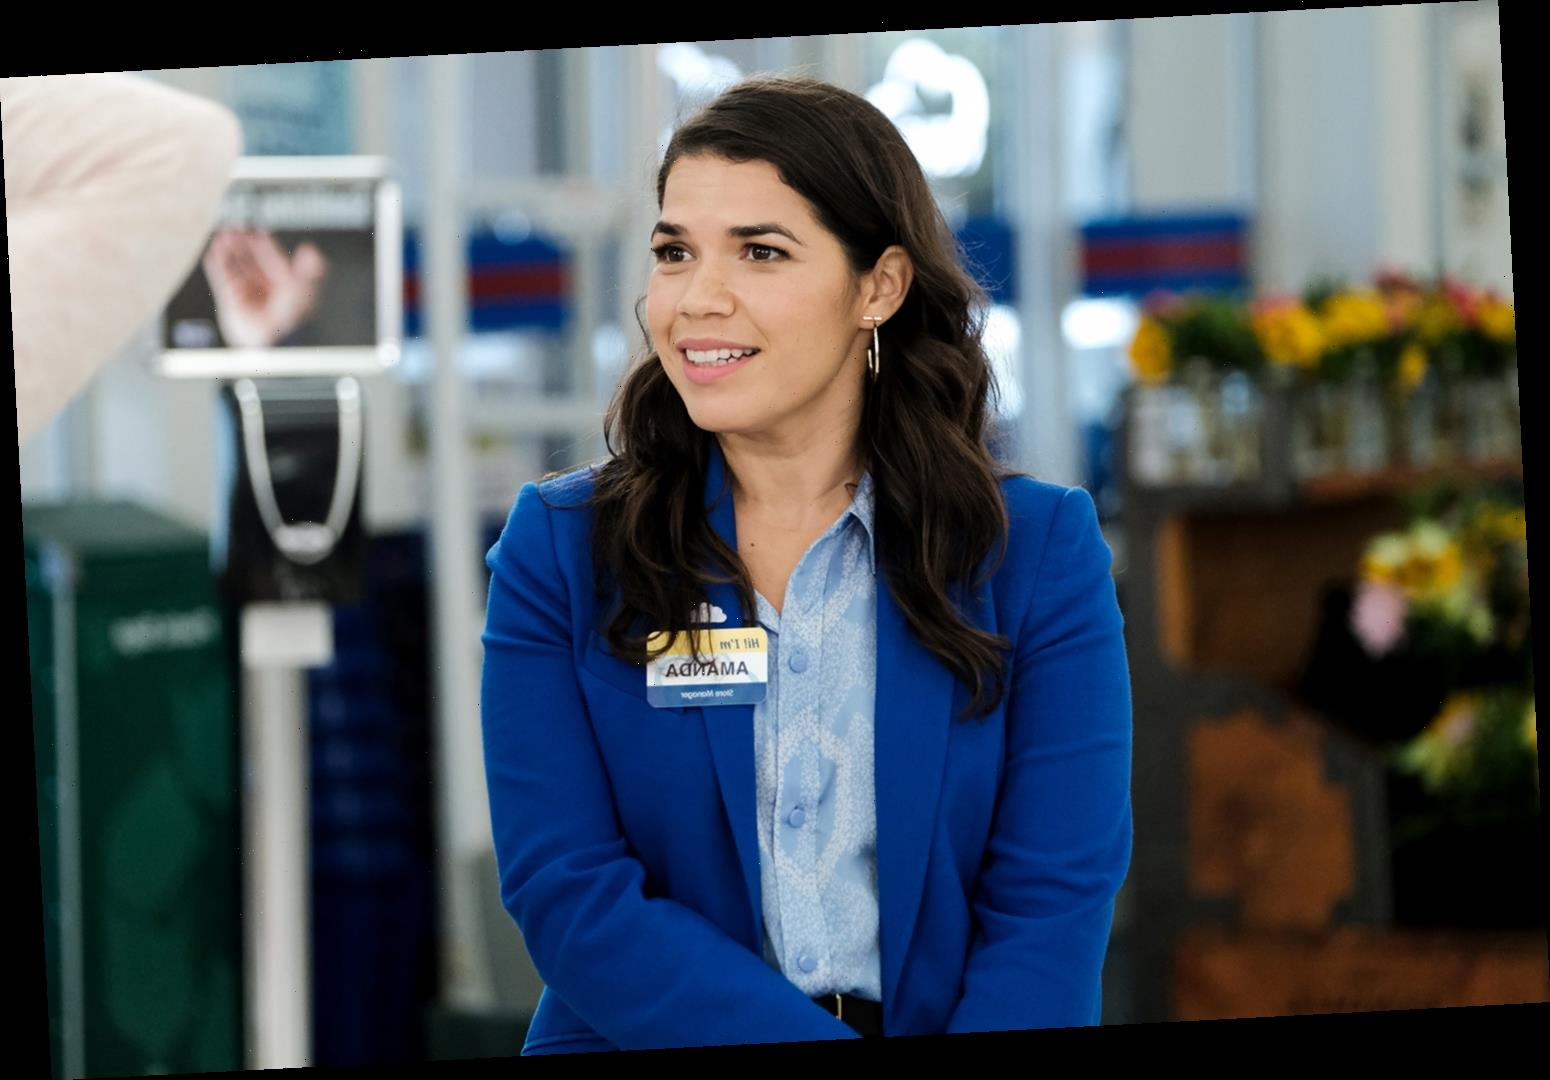 America Ferrera Says Her Final Superstore Episode Is a 'Tearjerker': 'Have the Kleenex Nearby'